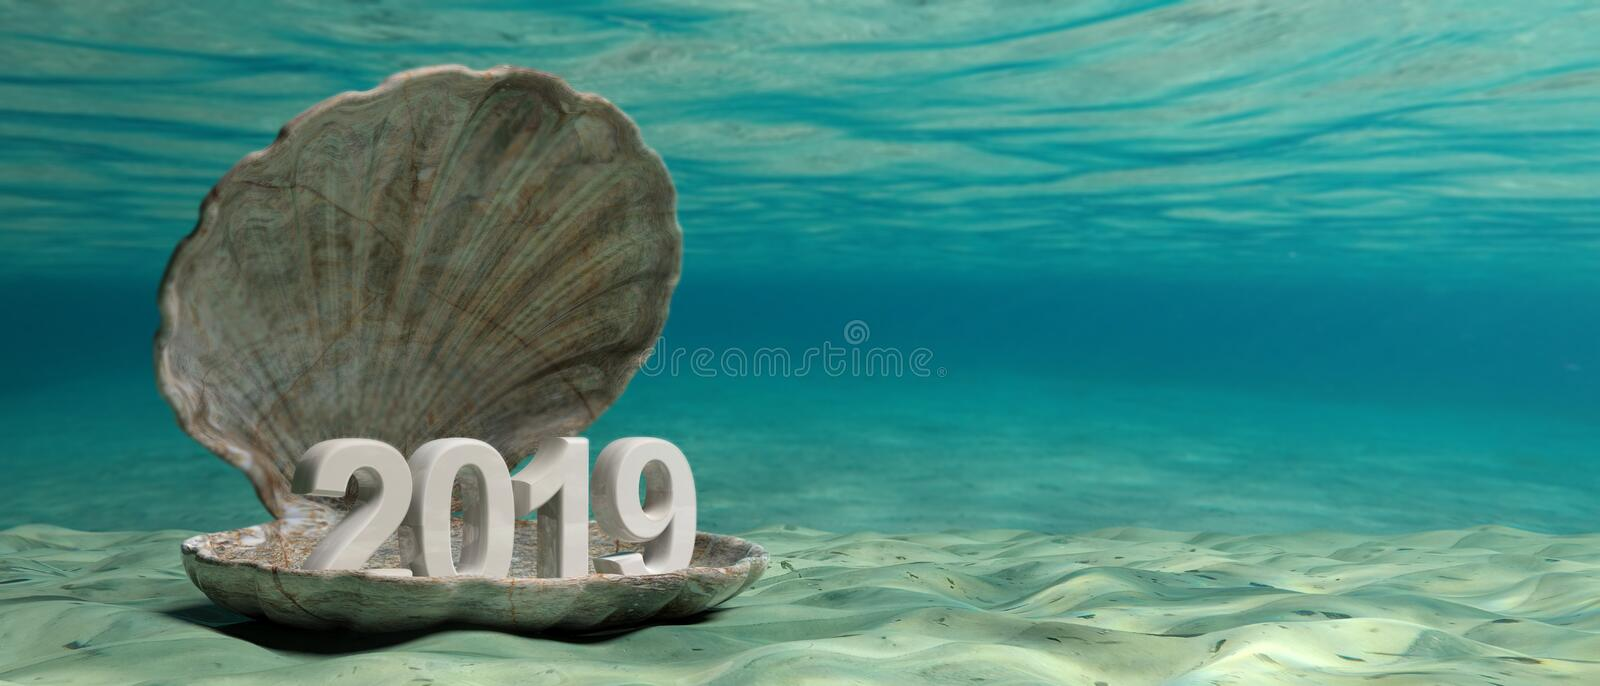 2019 New year in an oyster shell underwater, on the seabed. 3d illustration royalty free illustration